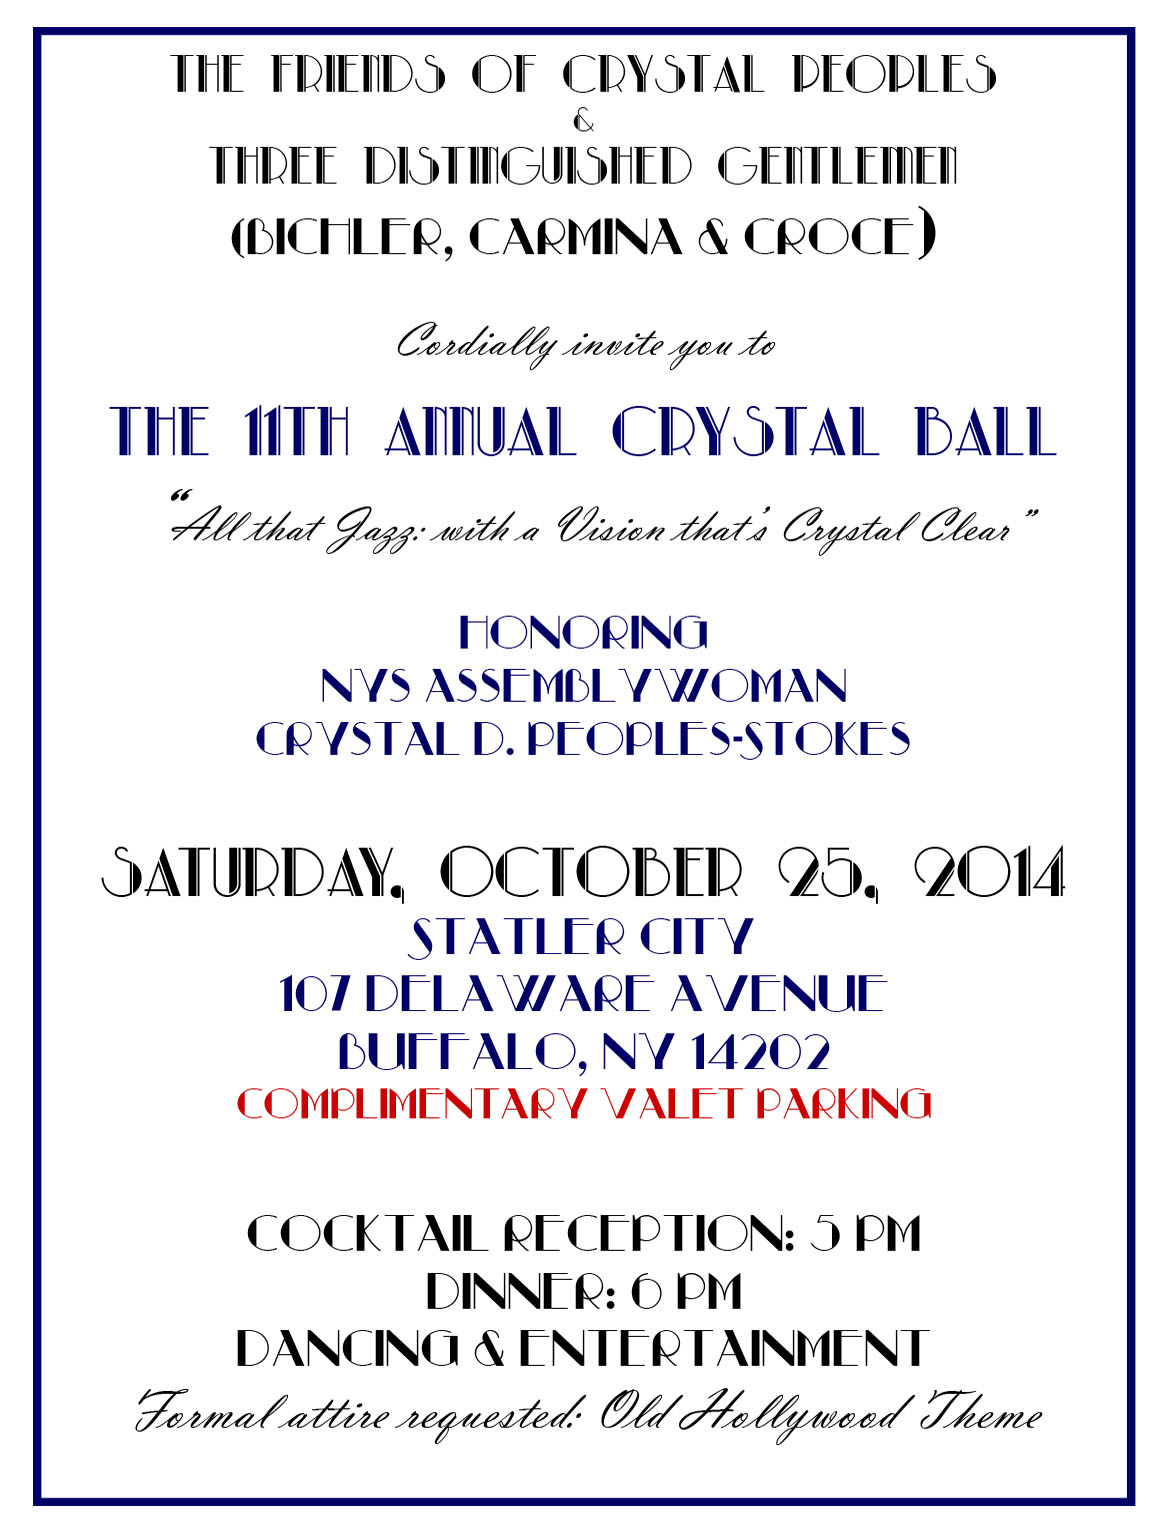 CPB14-_Formal_invitation3-3.jpg